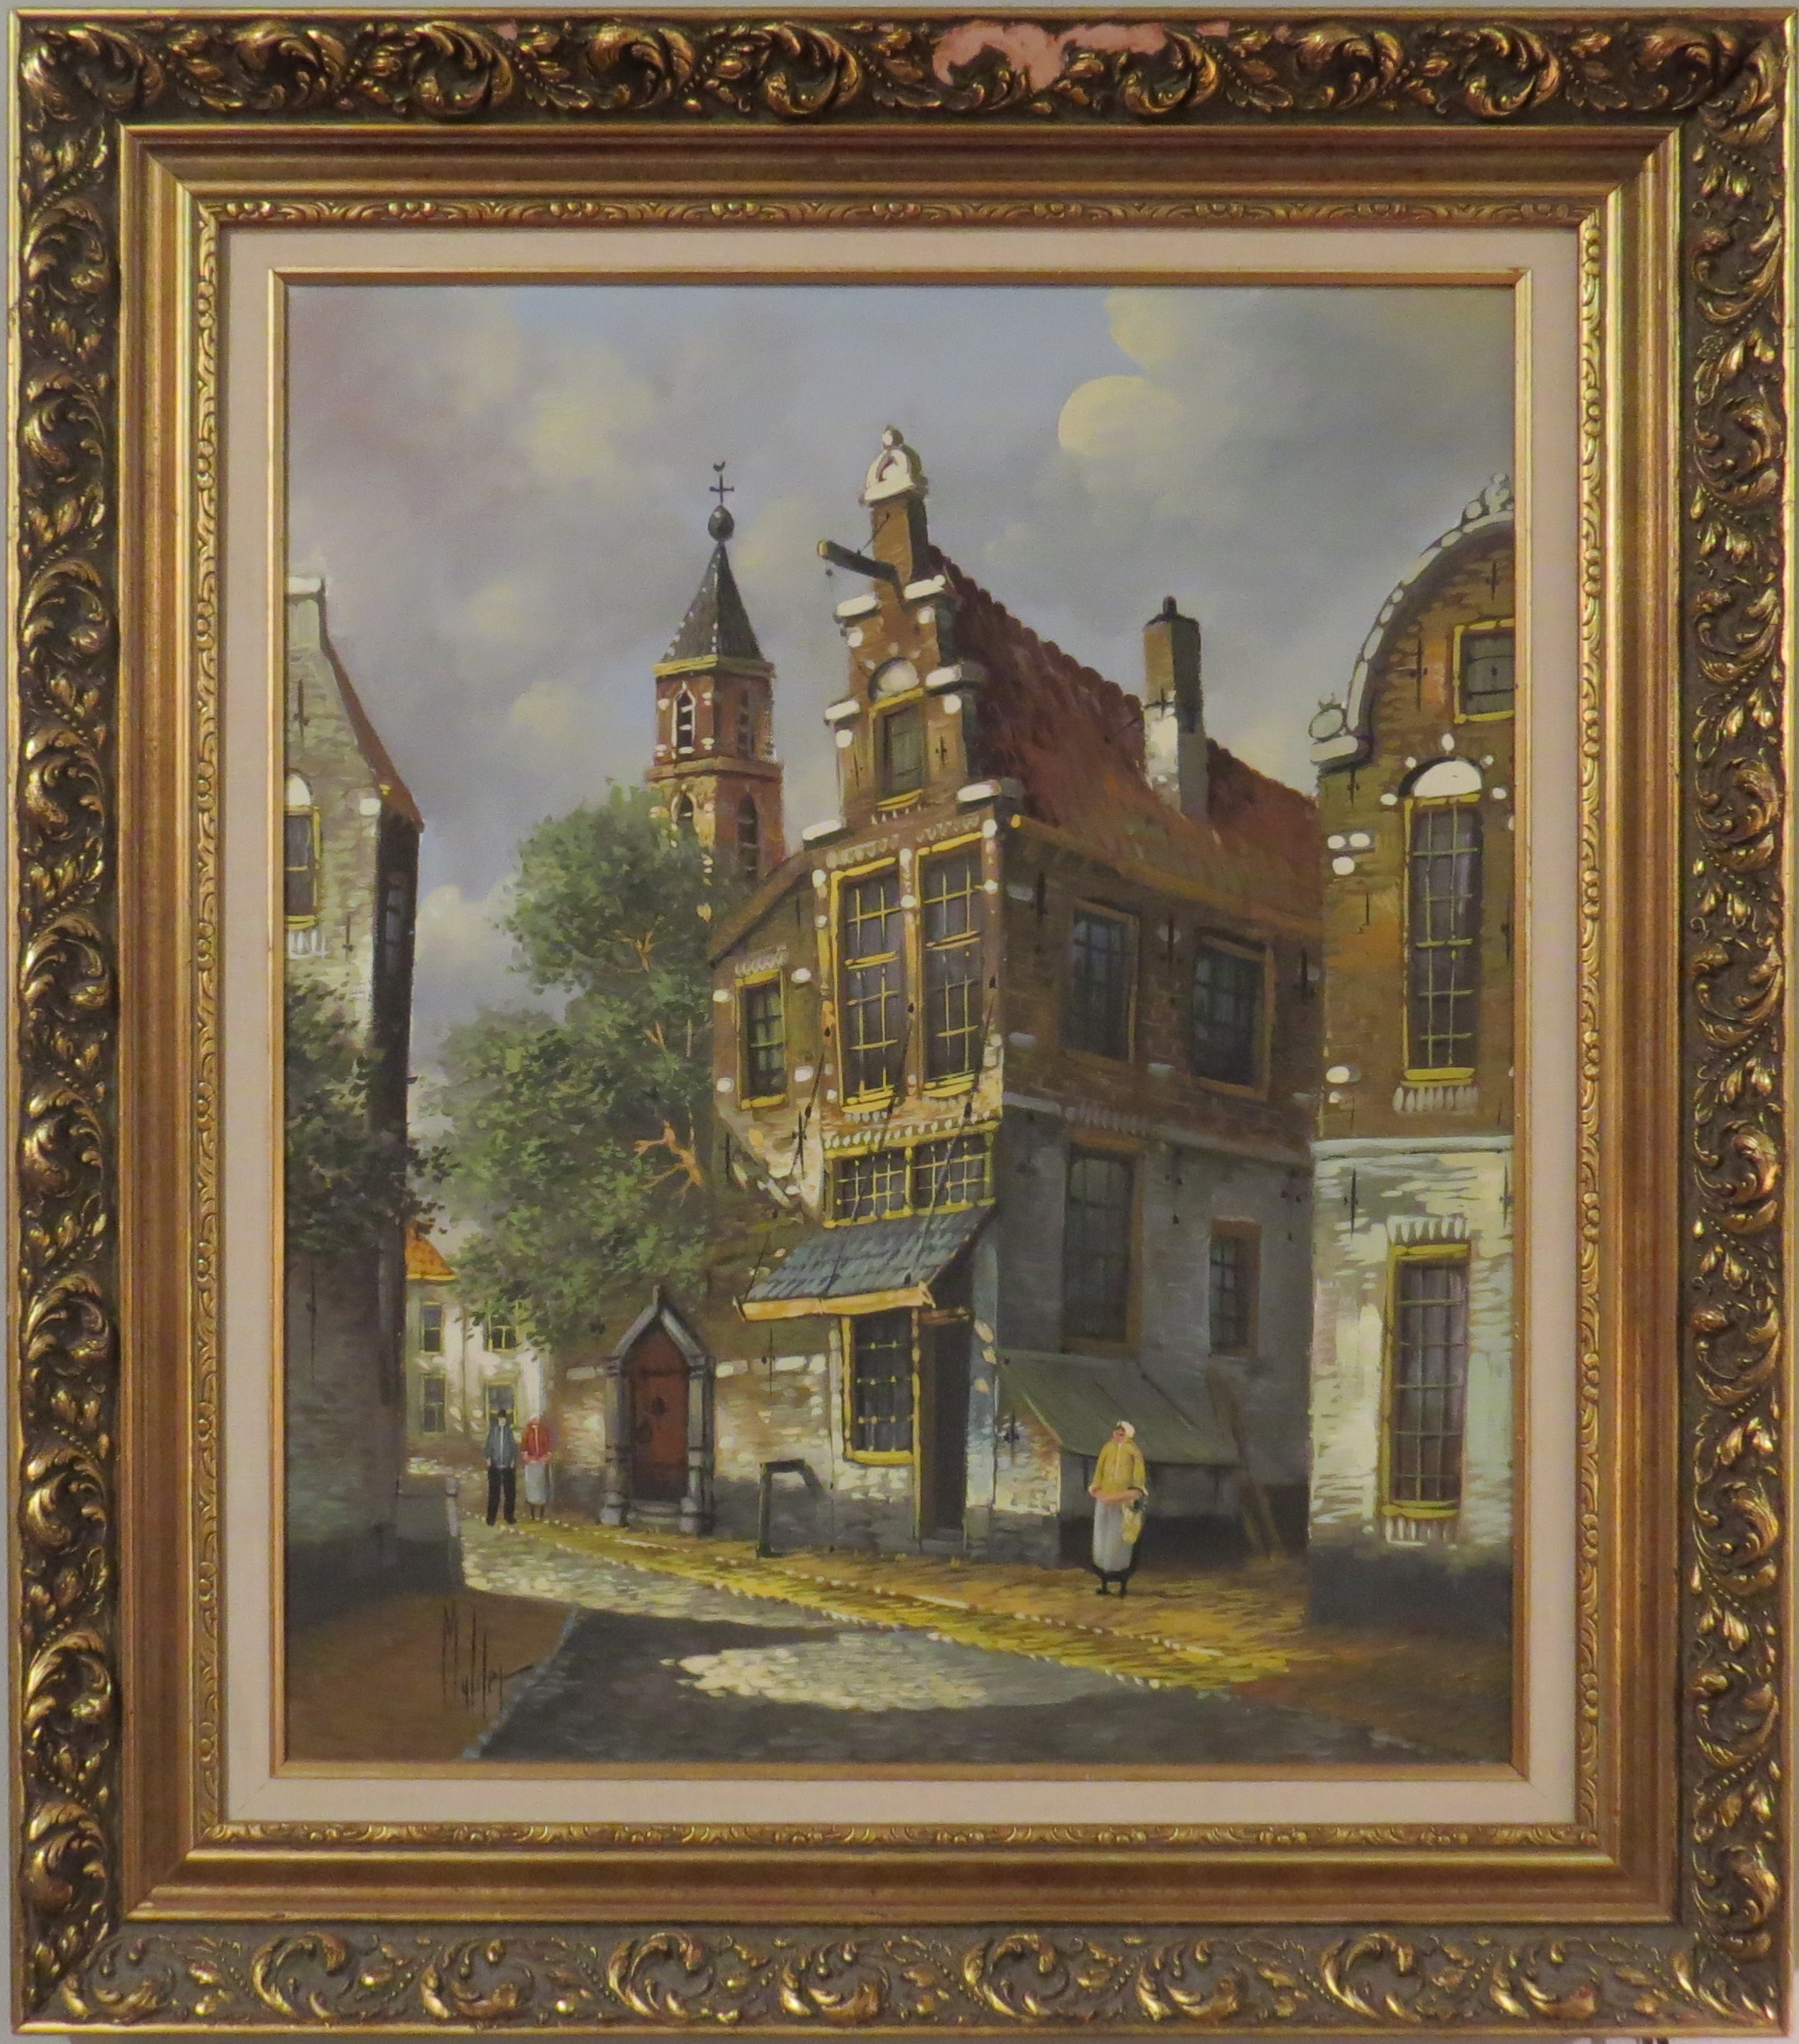 Oil on Canvas of a European Village Scene, Signed Mulder